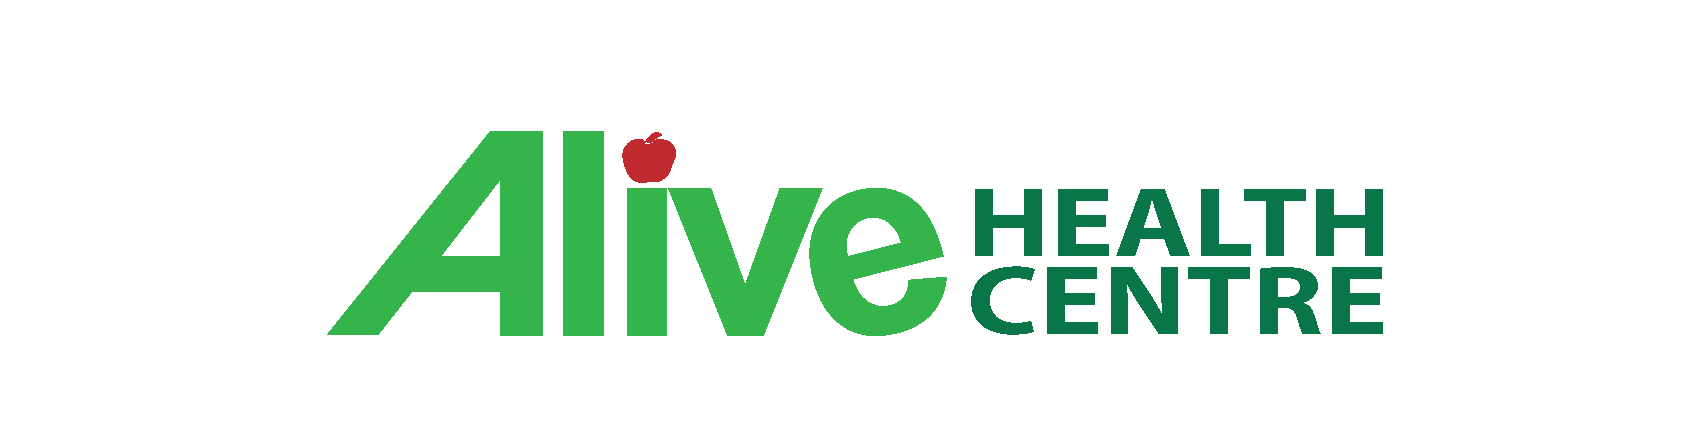 Alive Health Centre